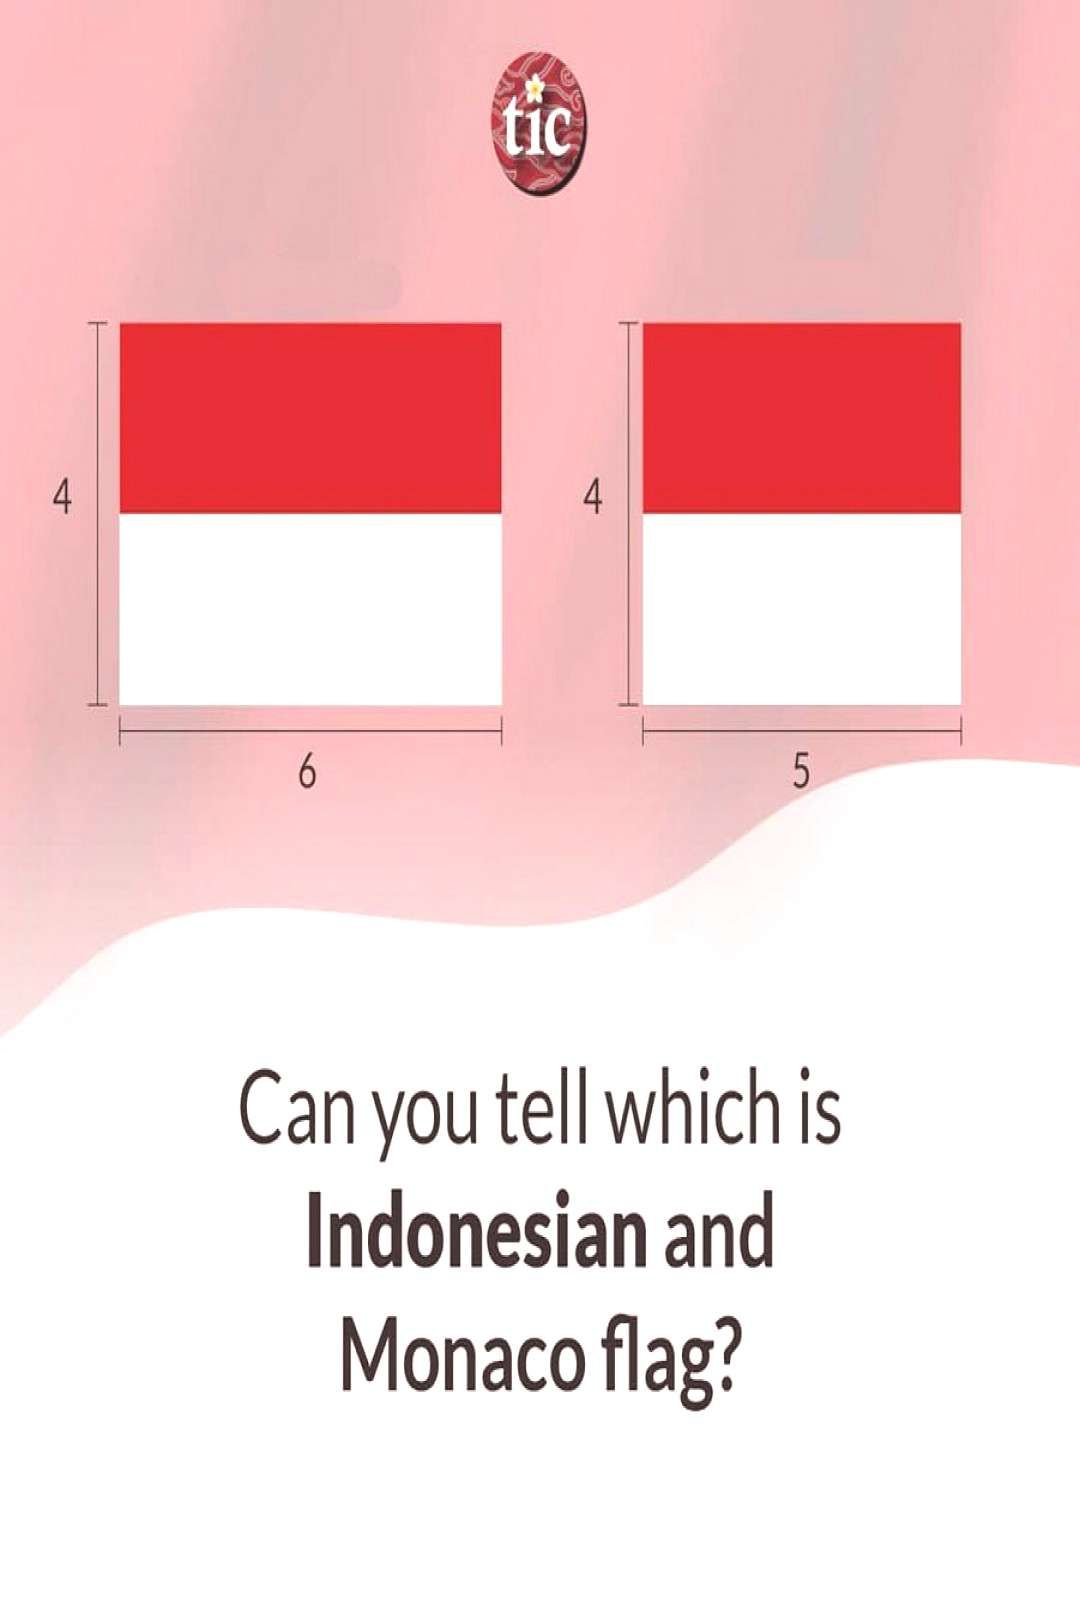 Graphically Indonesian Indonesia Identical Possible Monaco Which Says Flag Text That Tell You And The The Flag Of In 2020 Monaco Flag Indonesian Monaco